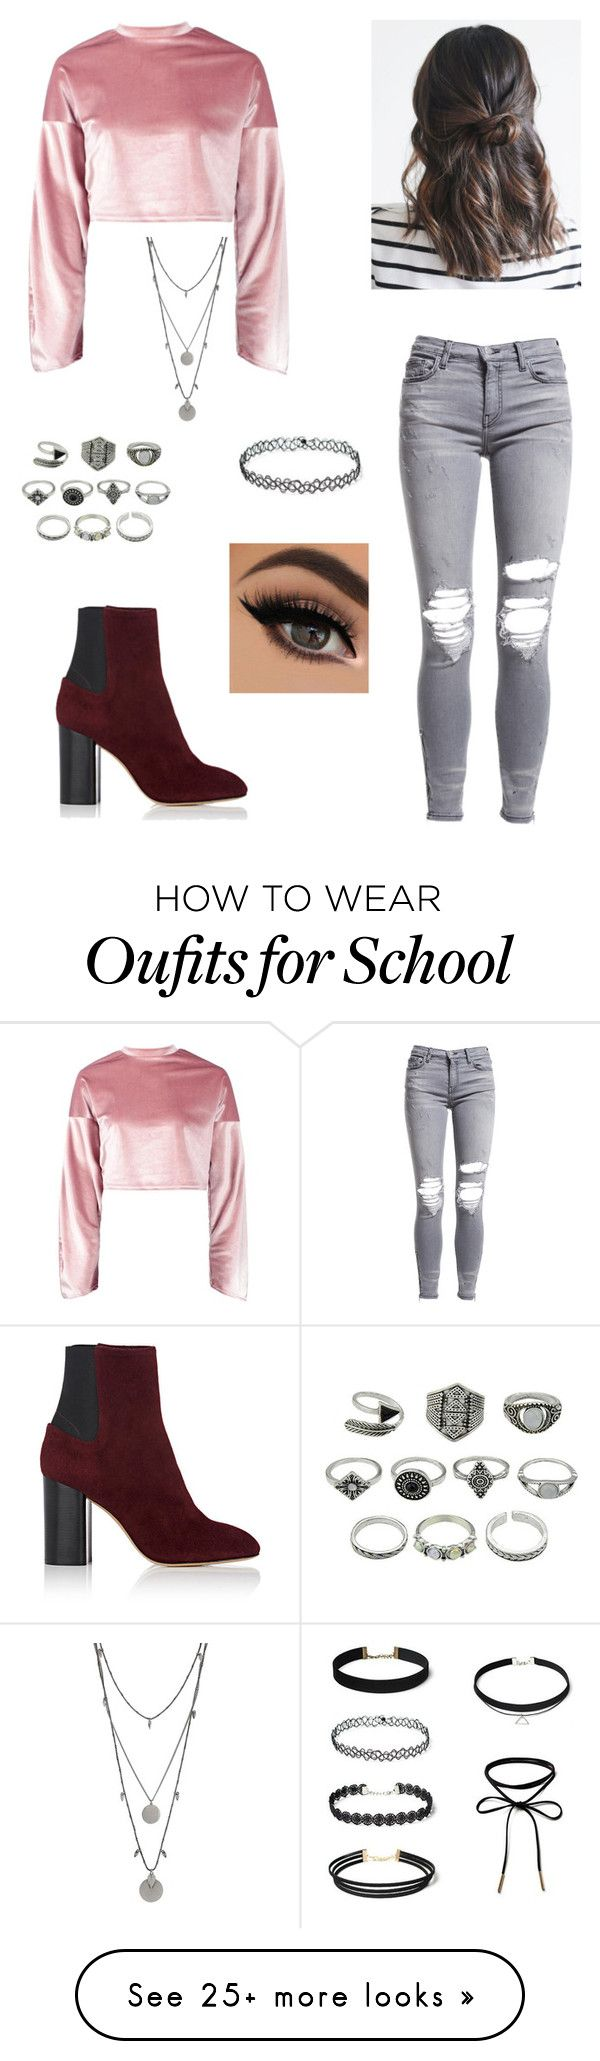 """Untitled #1017"" by dokkebakken13 on Polyvore featuring AMIRI, Boohoo, rag & bone and Vince Camuto"